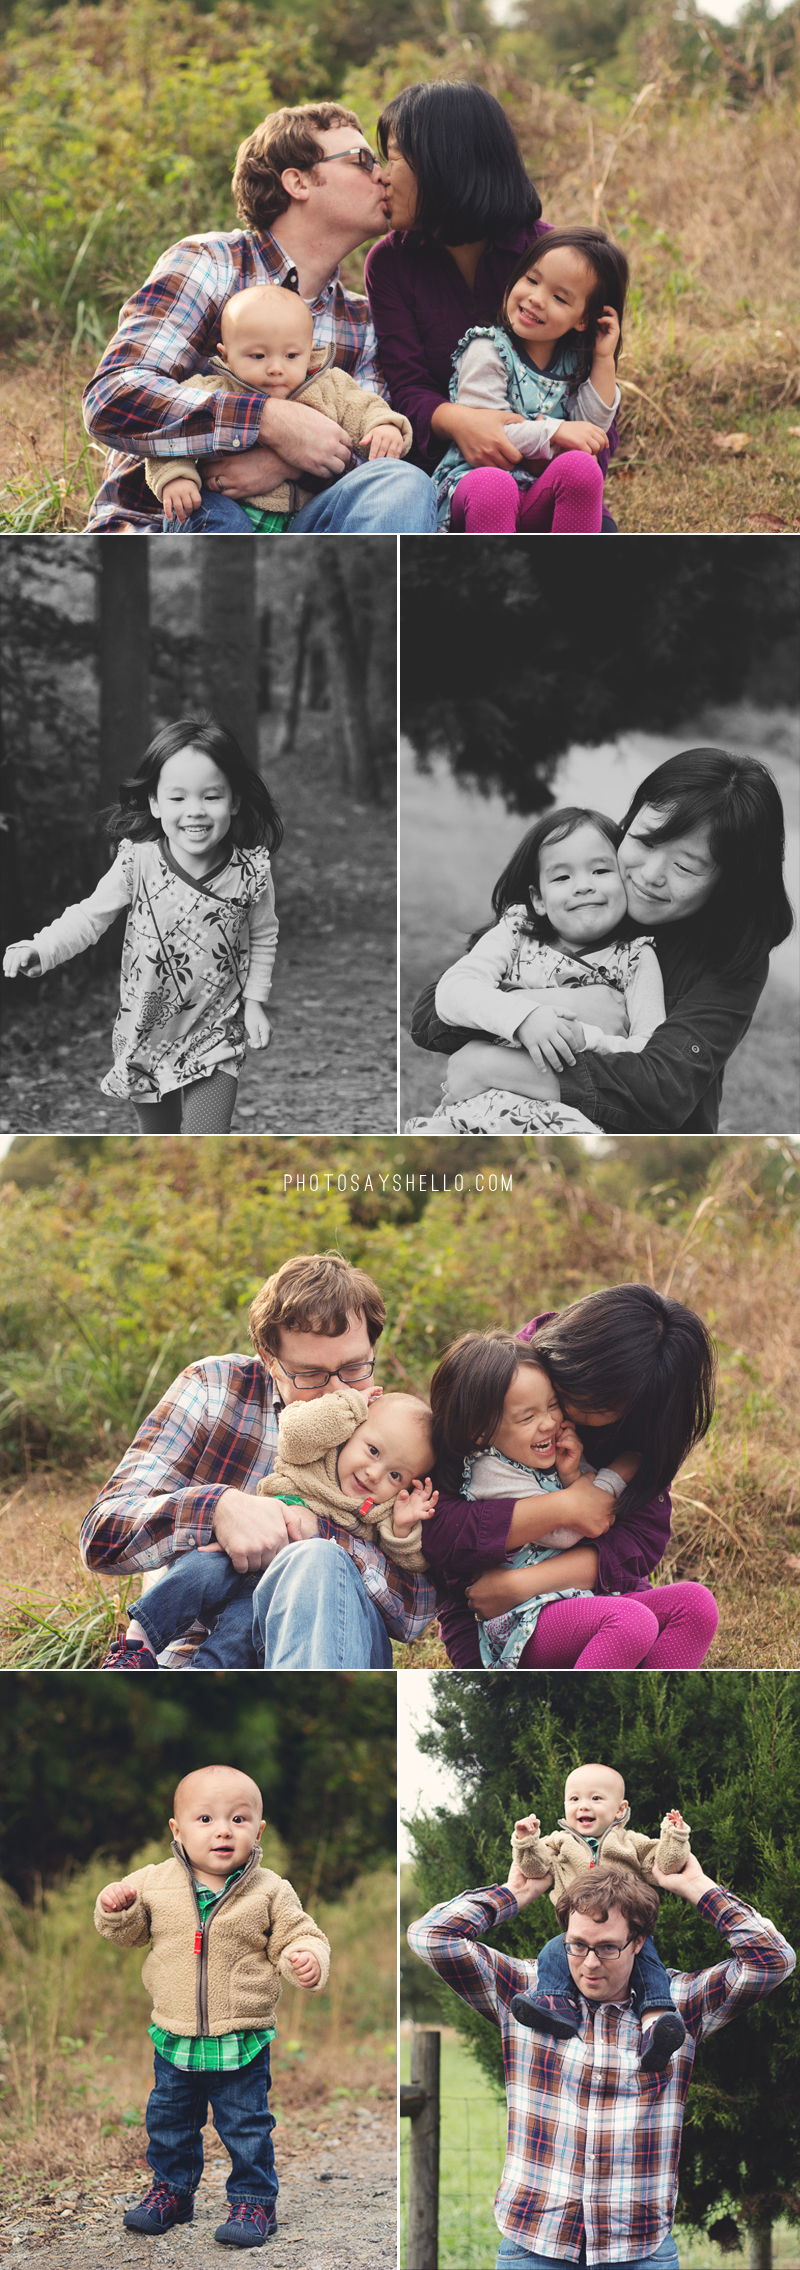 Lawrenceville GA Family Photographer | McDaniel Farm Park | Fall Family Session | Holiday Photo Session